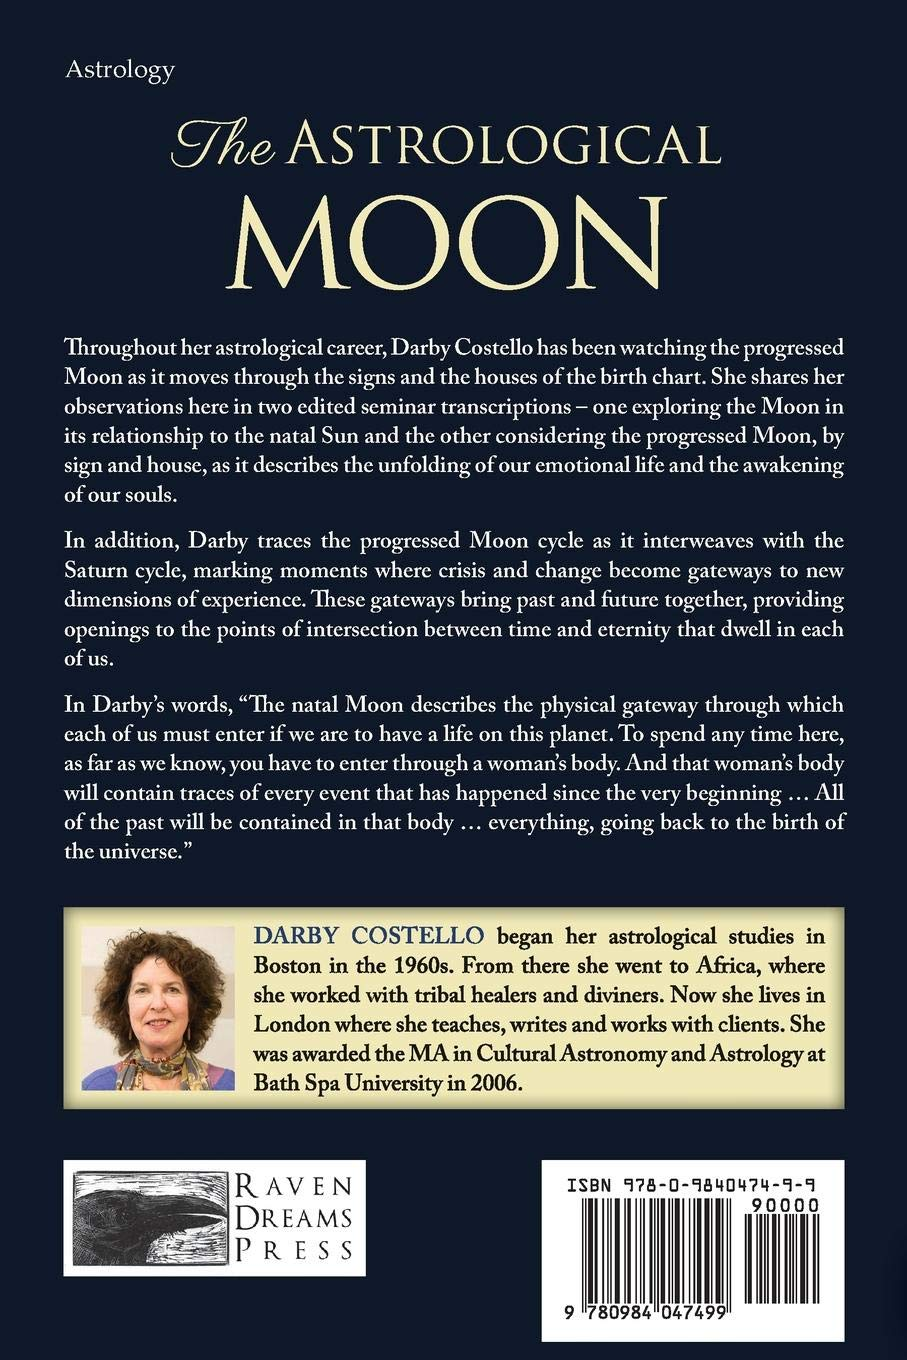 Amazon com: The Astrological Moon (9780984047499): Darby